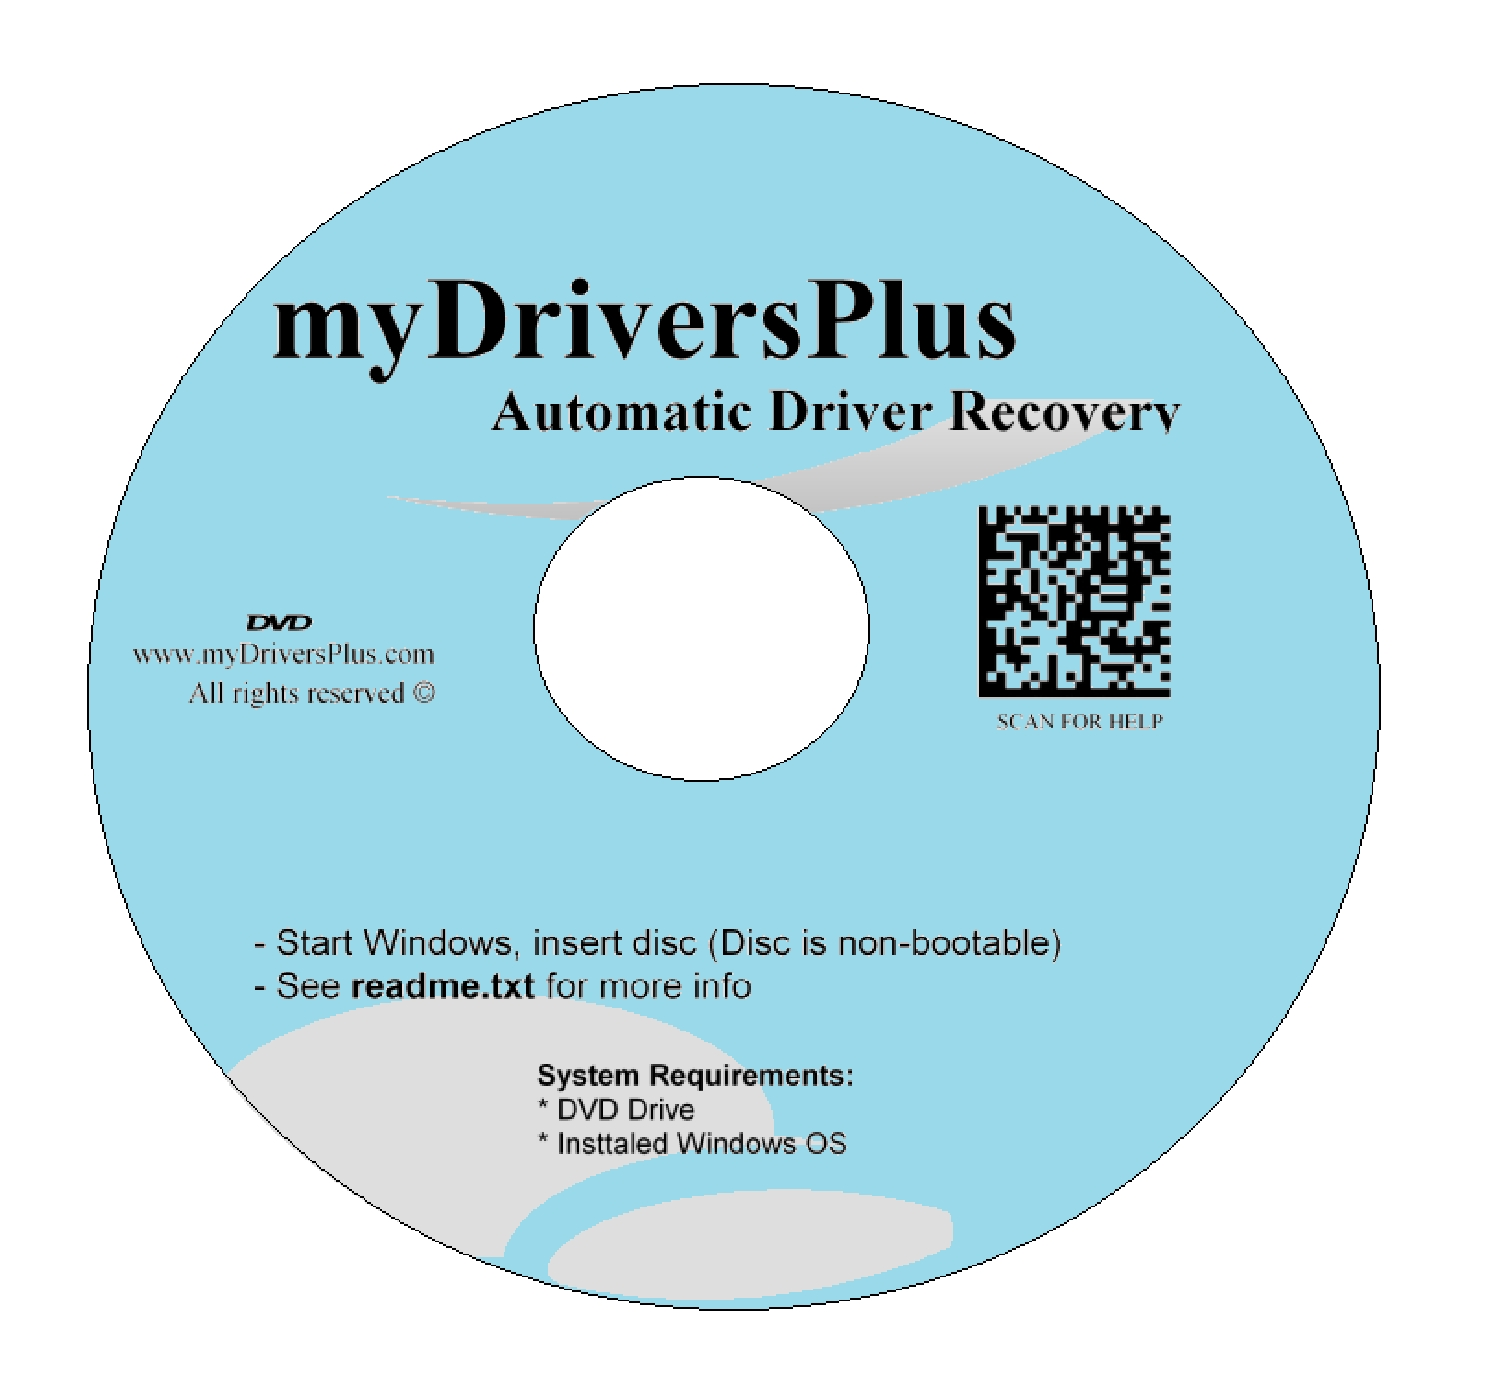 Dell Inspiron 15 (3521) Drivers Recovery Restore Resource Utilities Software with Automatic One-Click Installer Unattended for Internet, Wi-Fi, Ethernet, Video, Sound, Audio, USB, Devices, Chipset ..